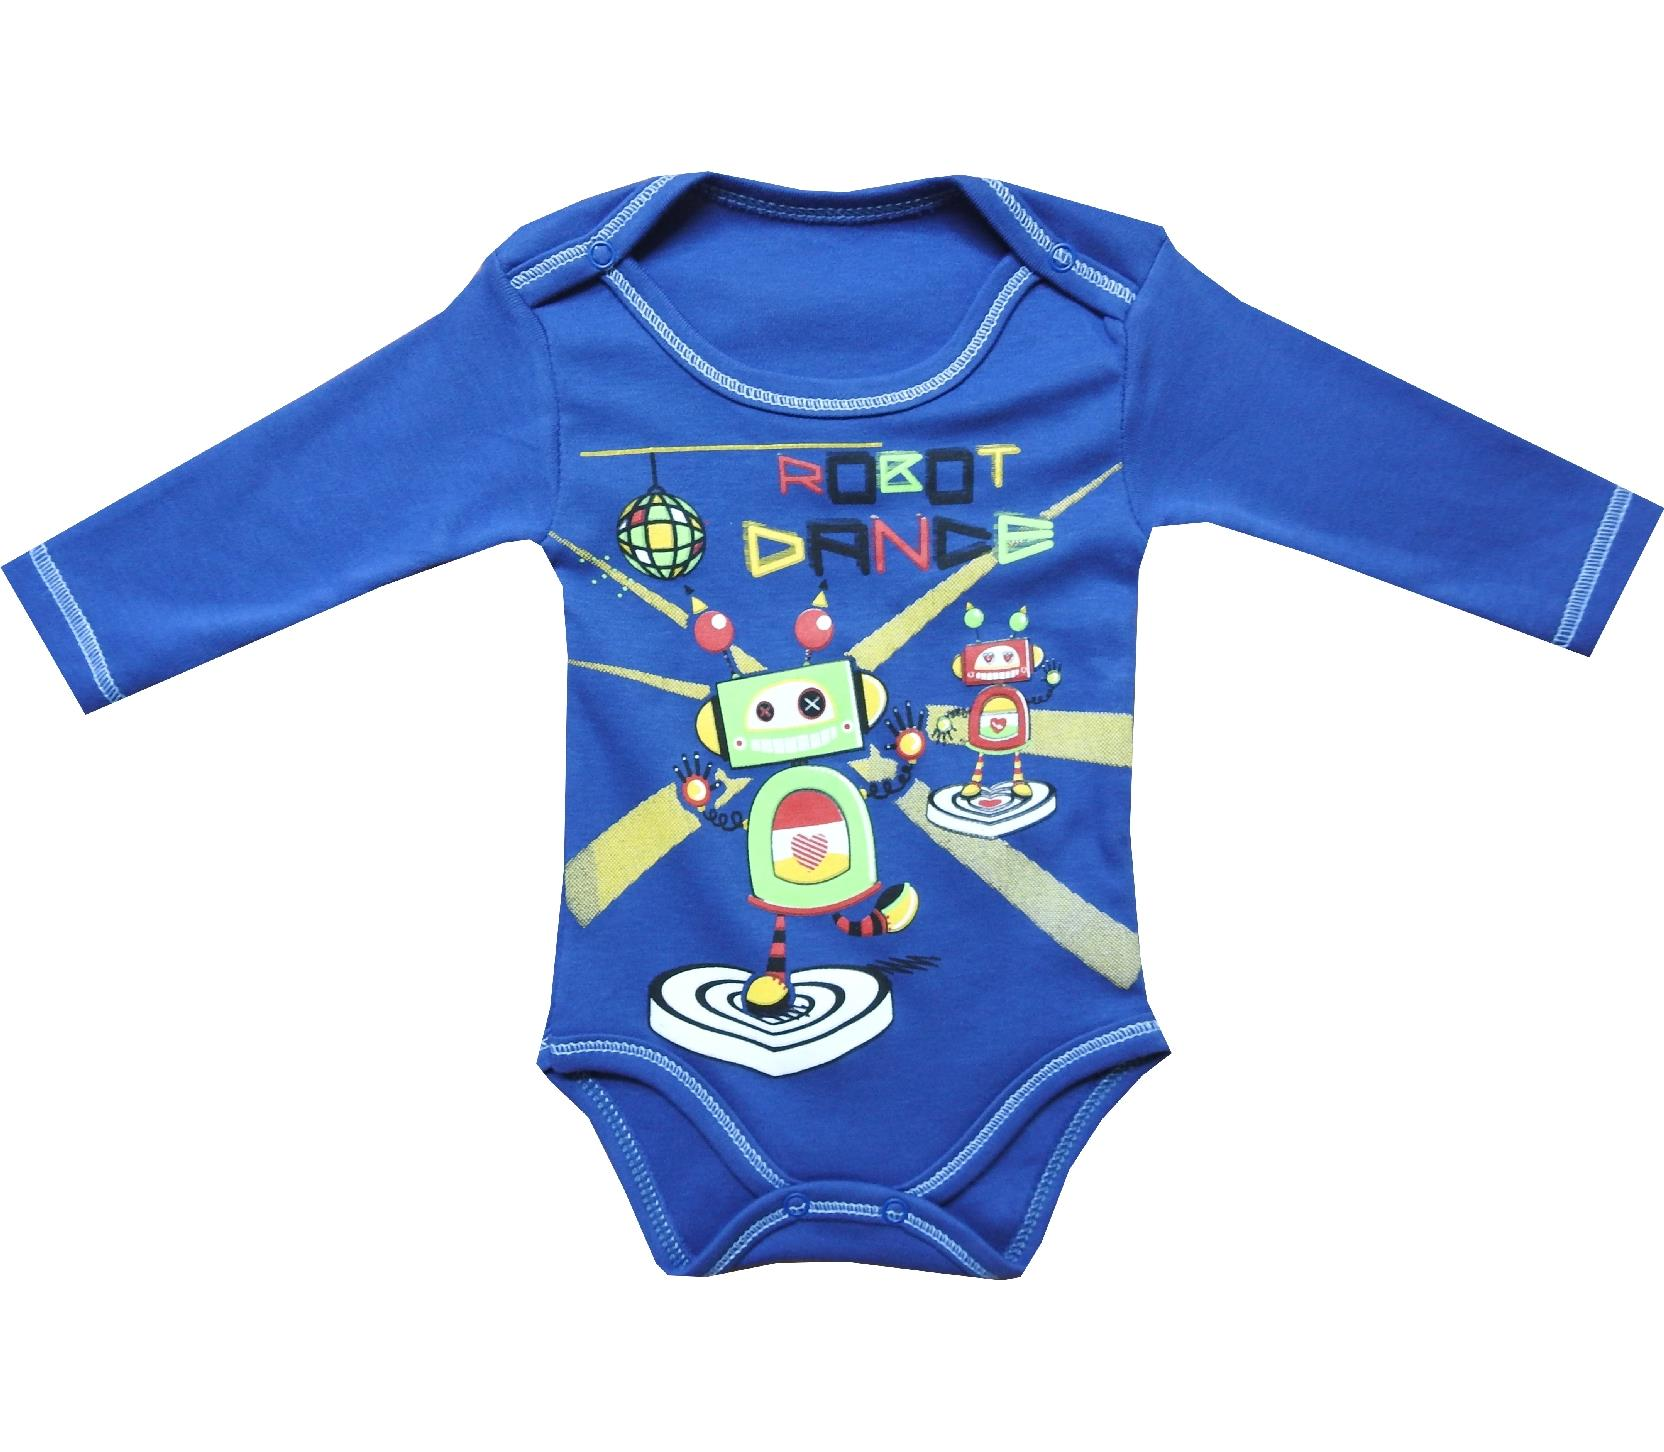 4630 Wholesale robots printed bodysuit for boy baby clothes 3 6 9